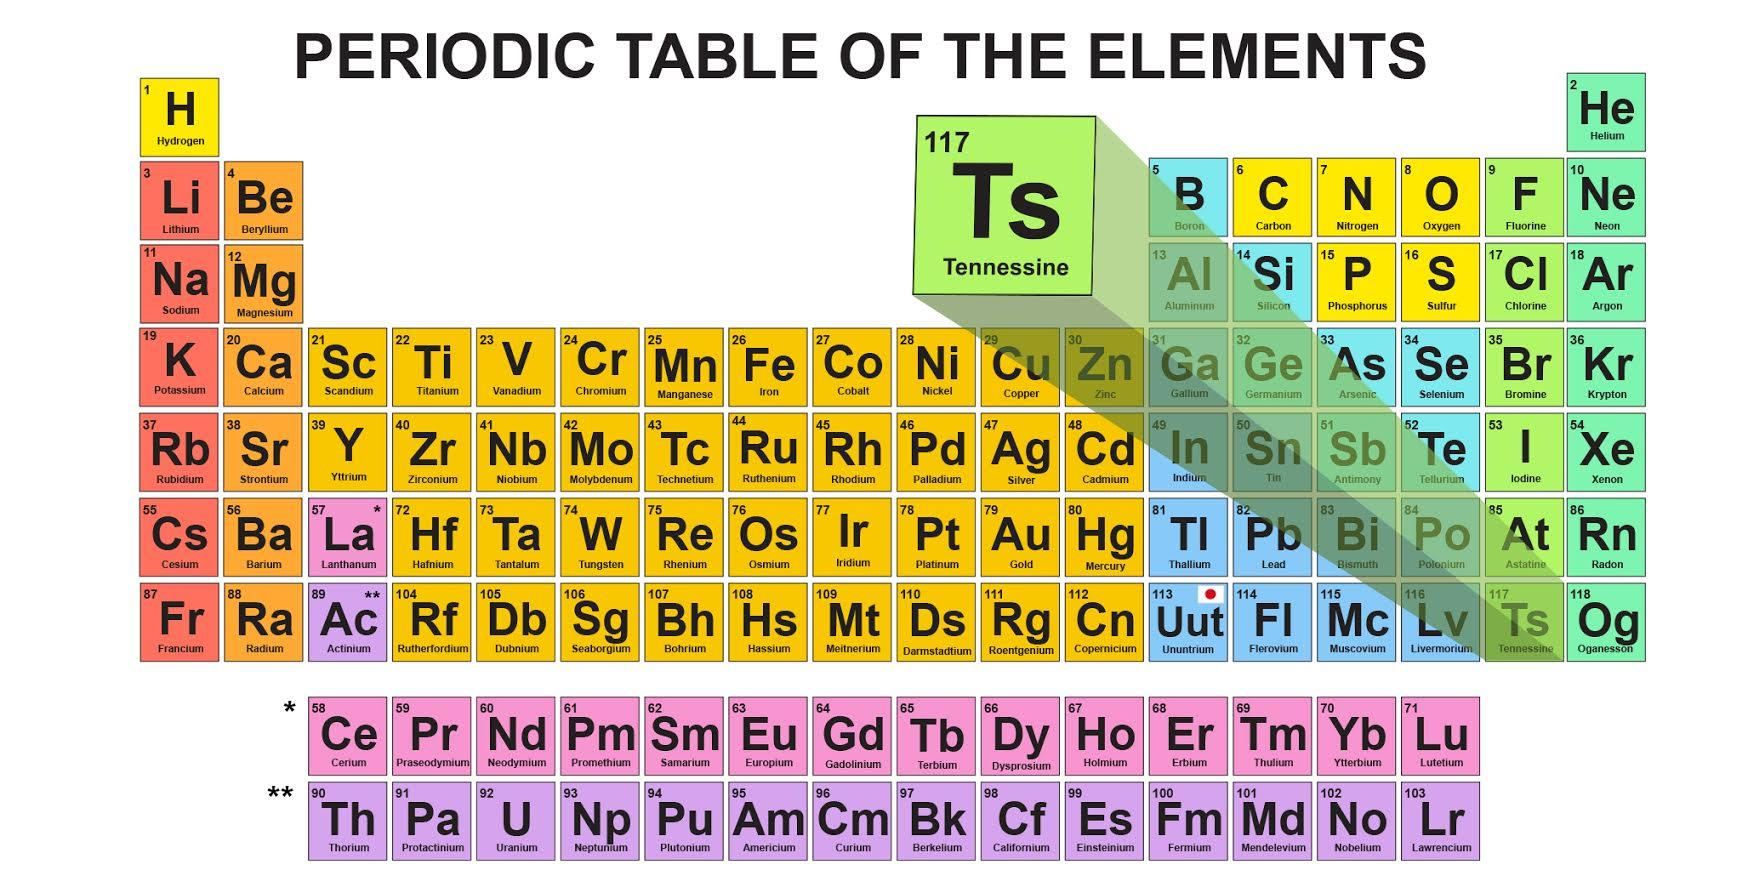 a proposed revised version of the periodic table of the elements - Periodic Table Of Elements Years